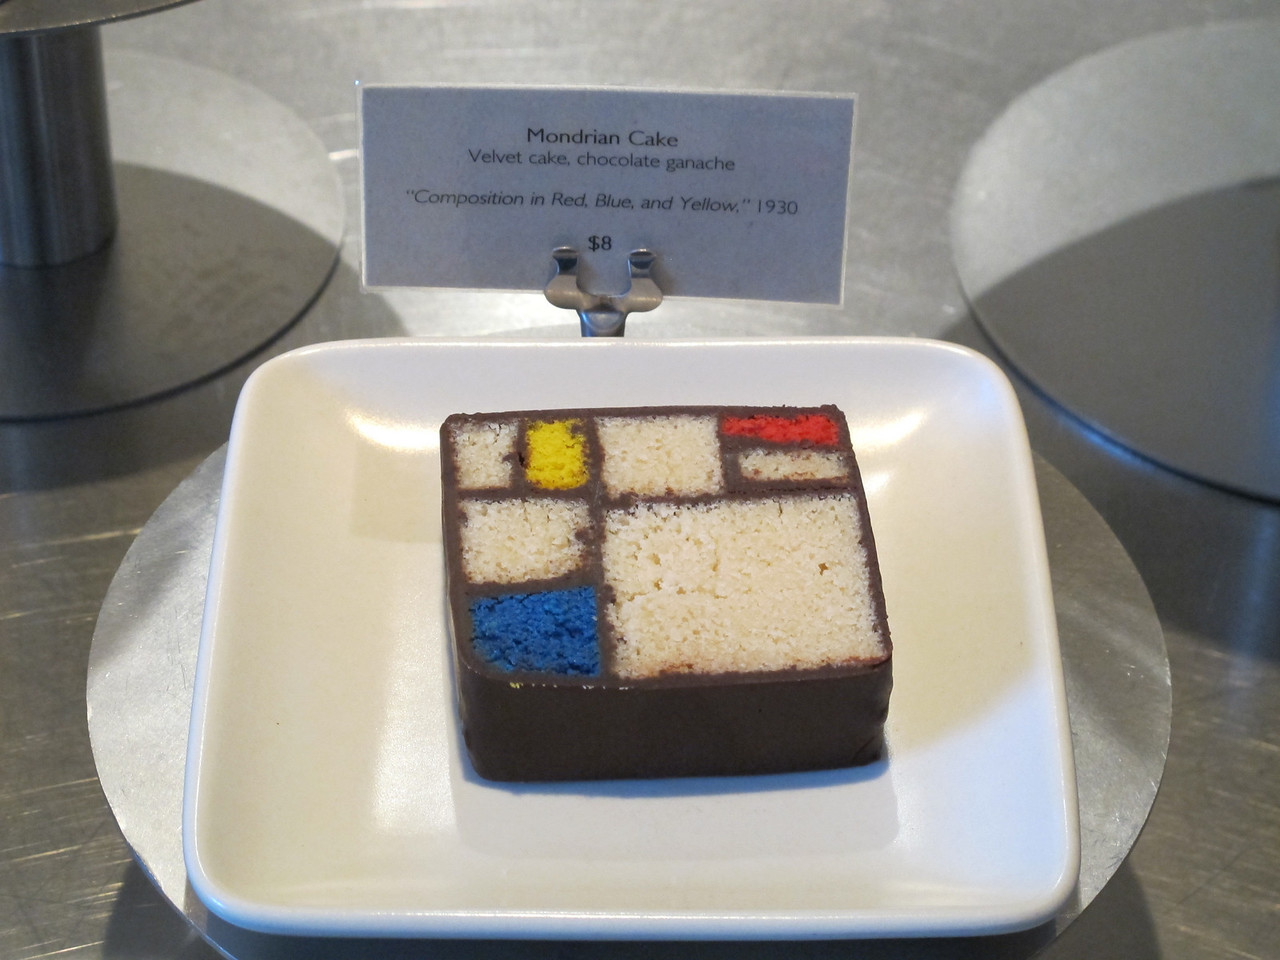 At this museum even the cake is art!